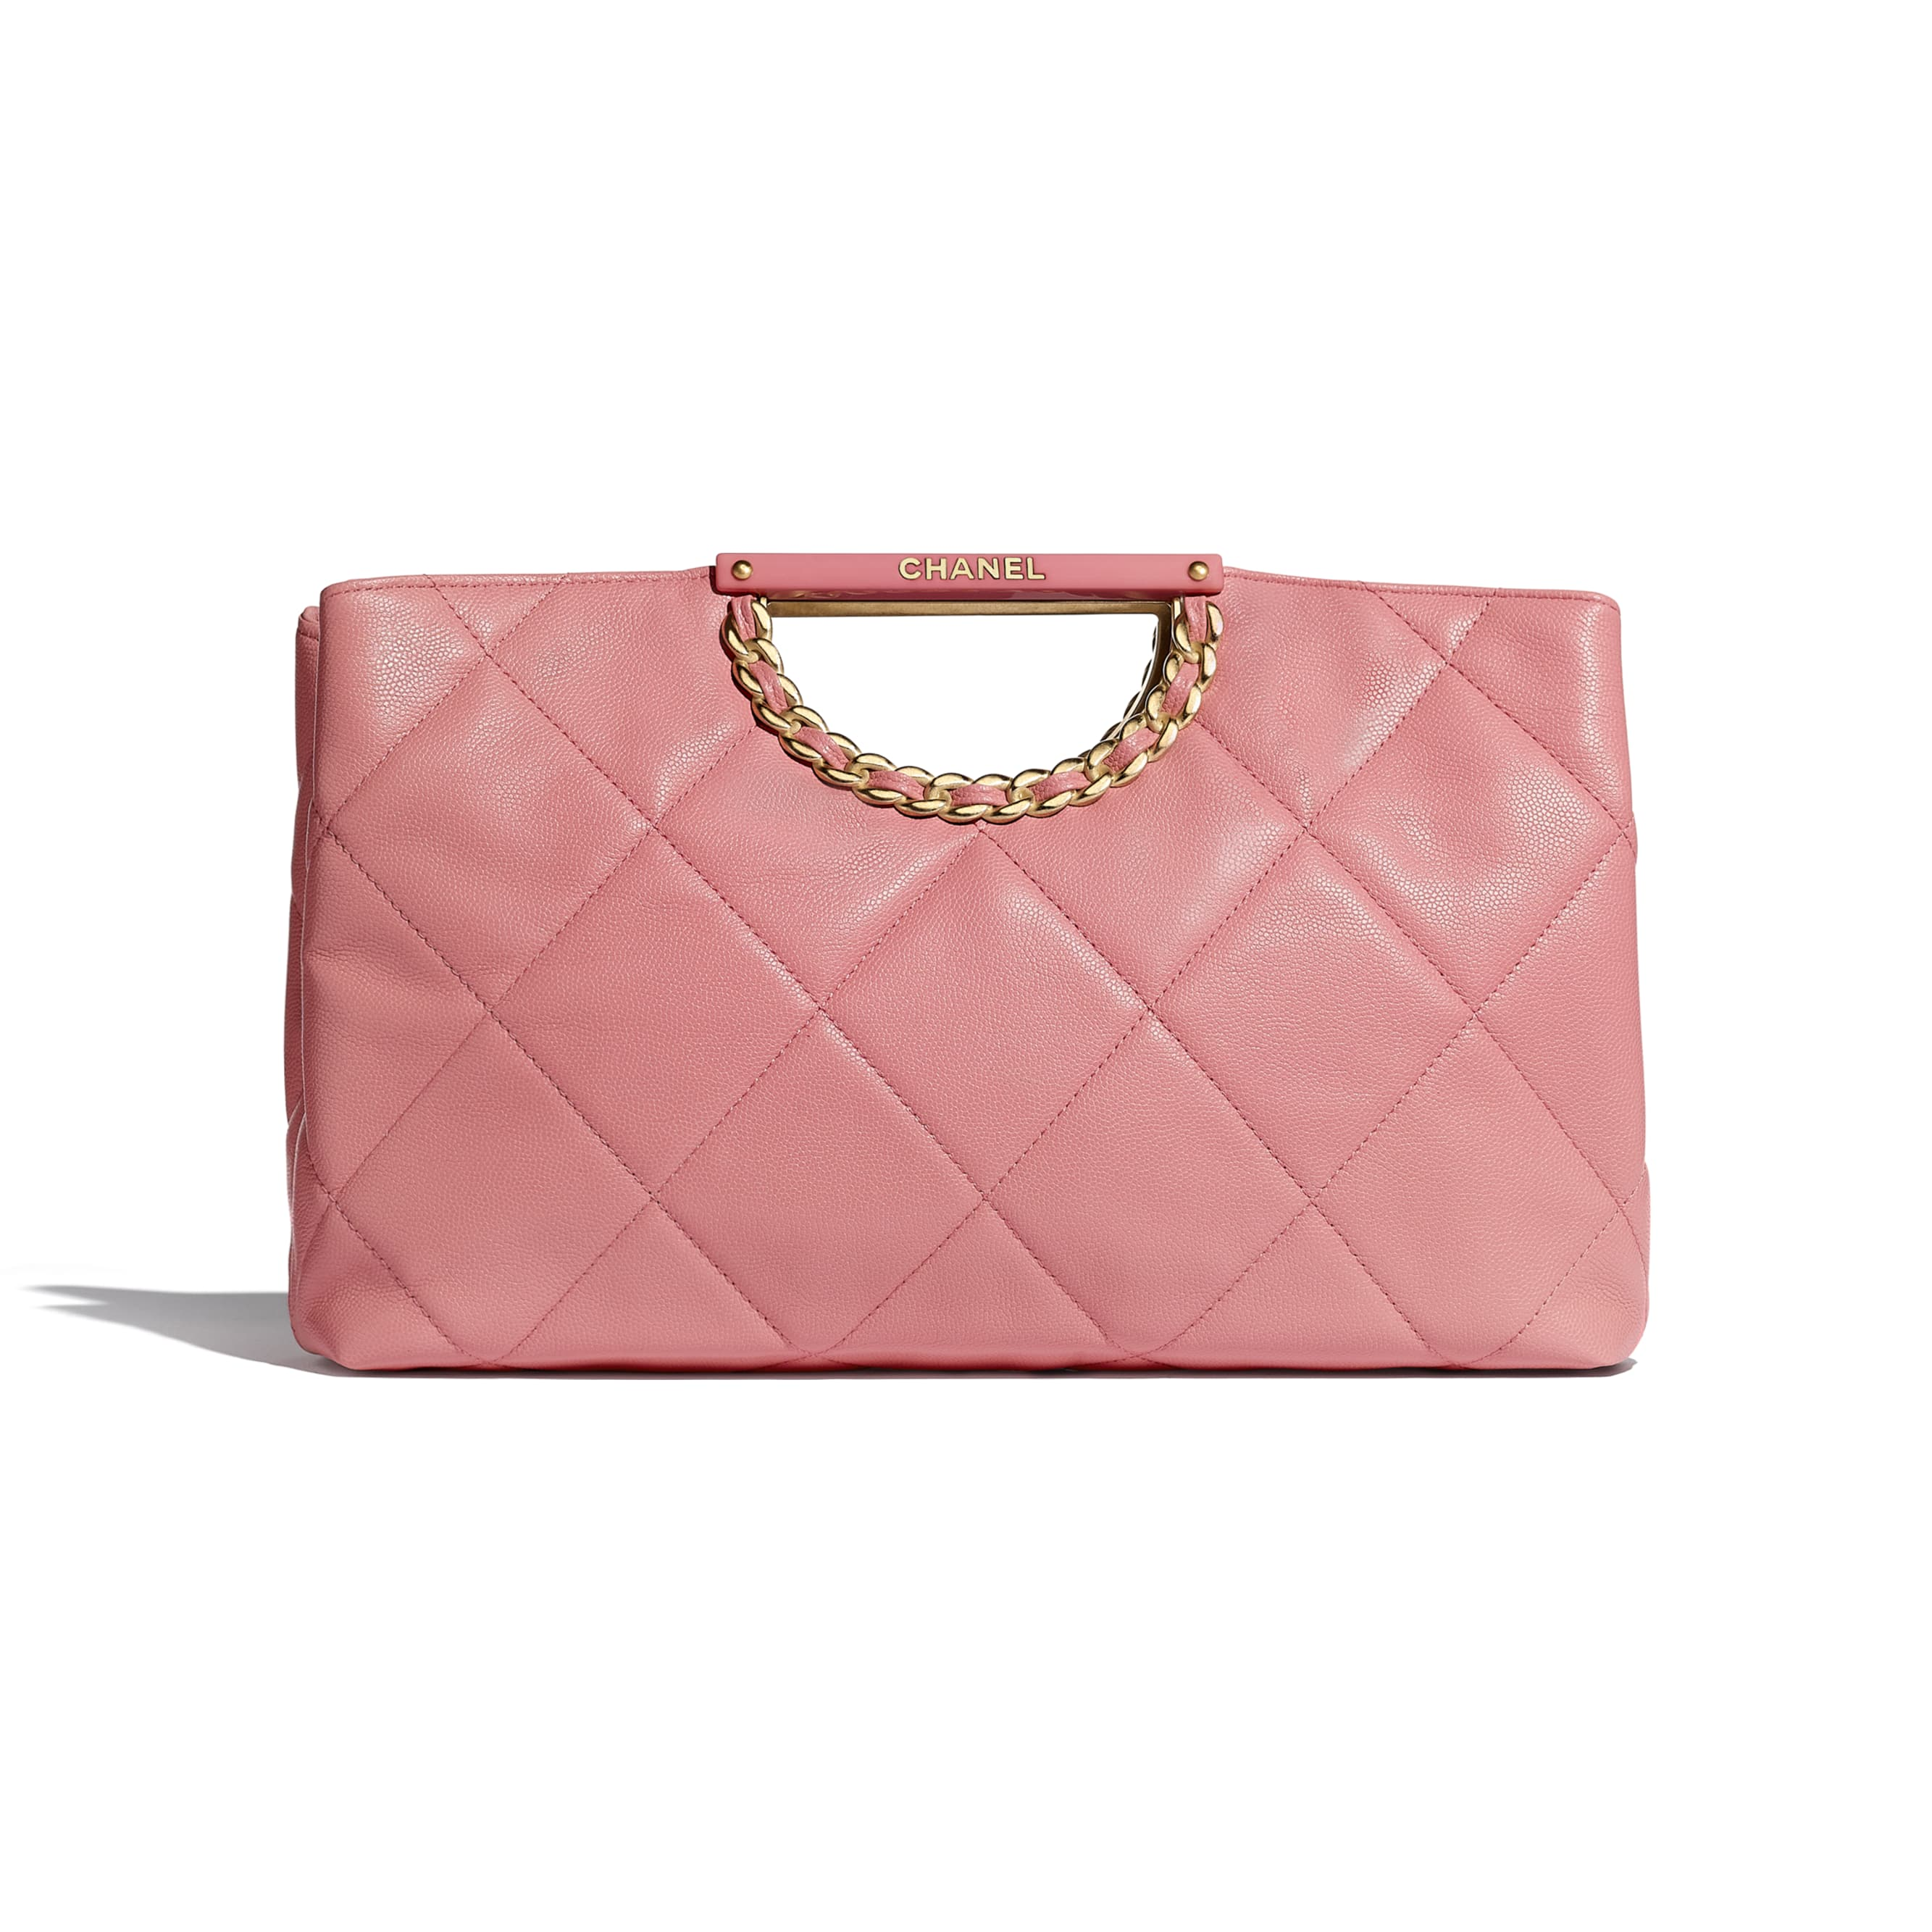 Clutch - Pink - Grained Calfskin & Gold-Tone Metal - CHANEL - Default view - see standard sized version